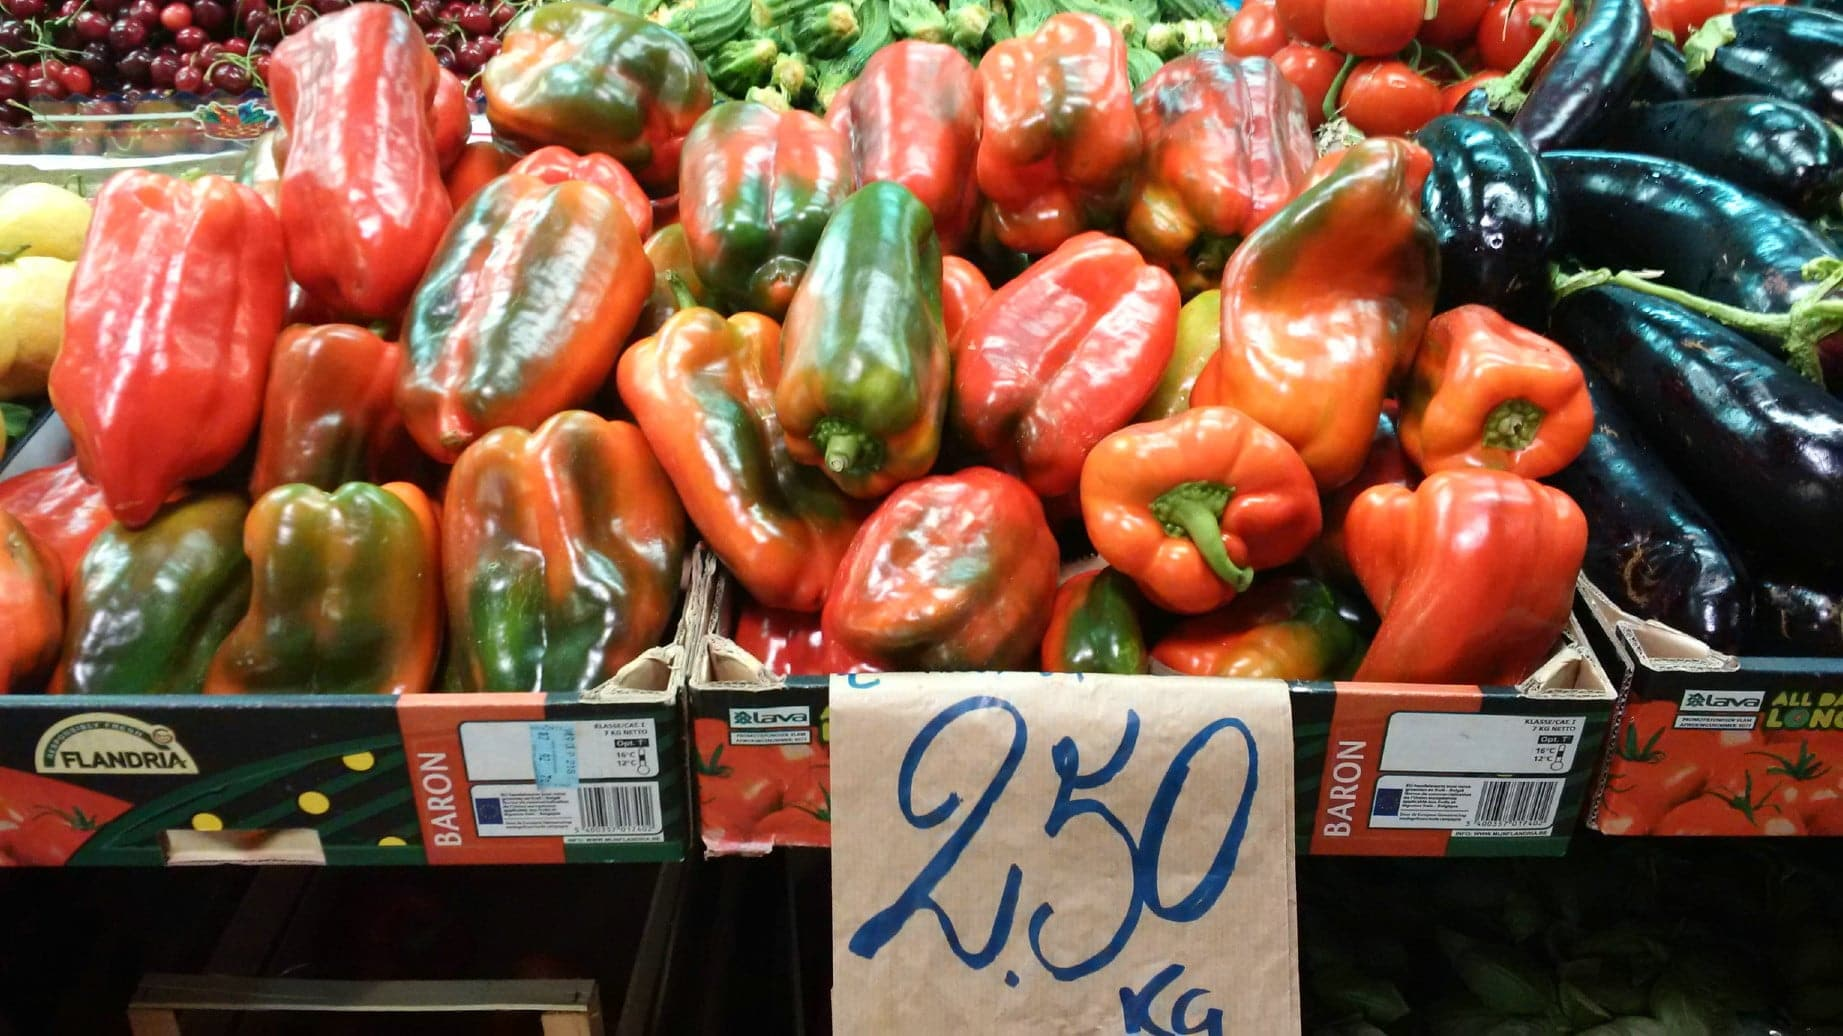 Summer peppers at the market